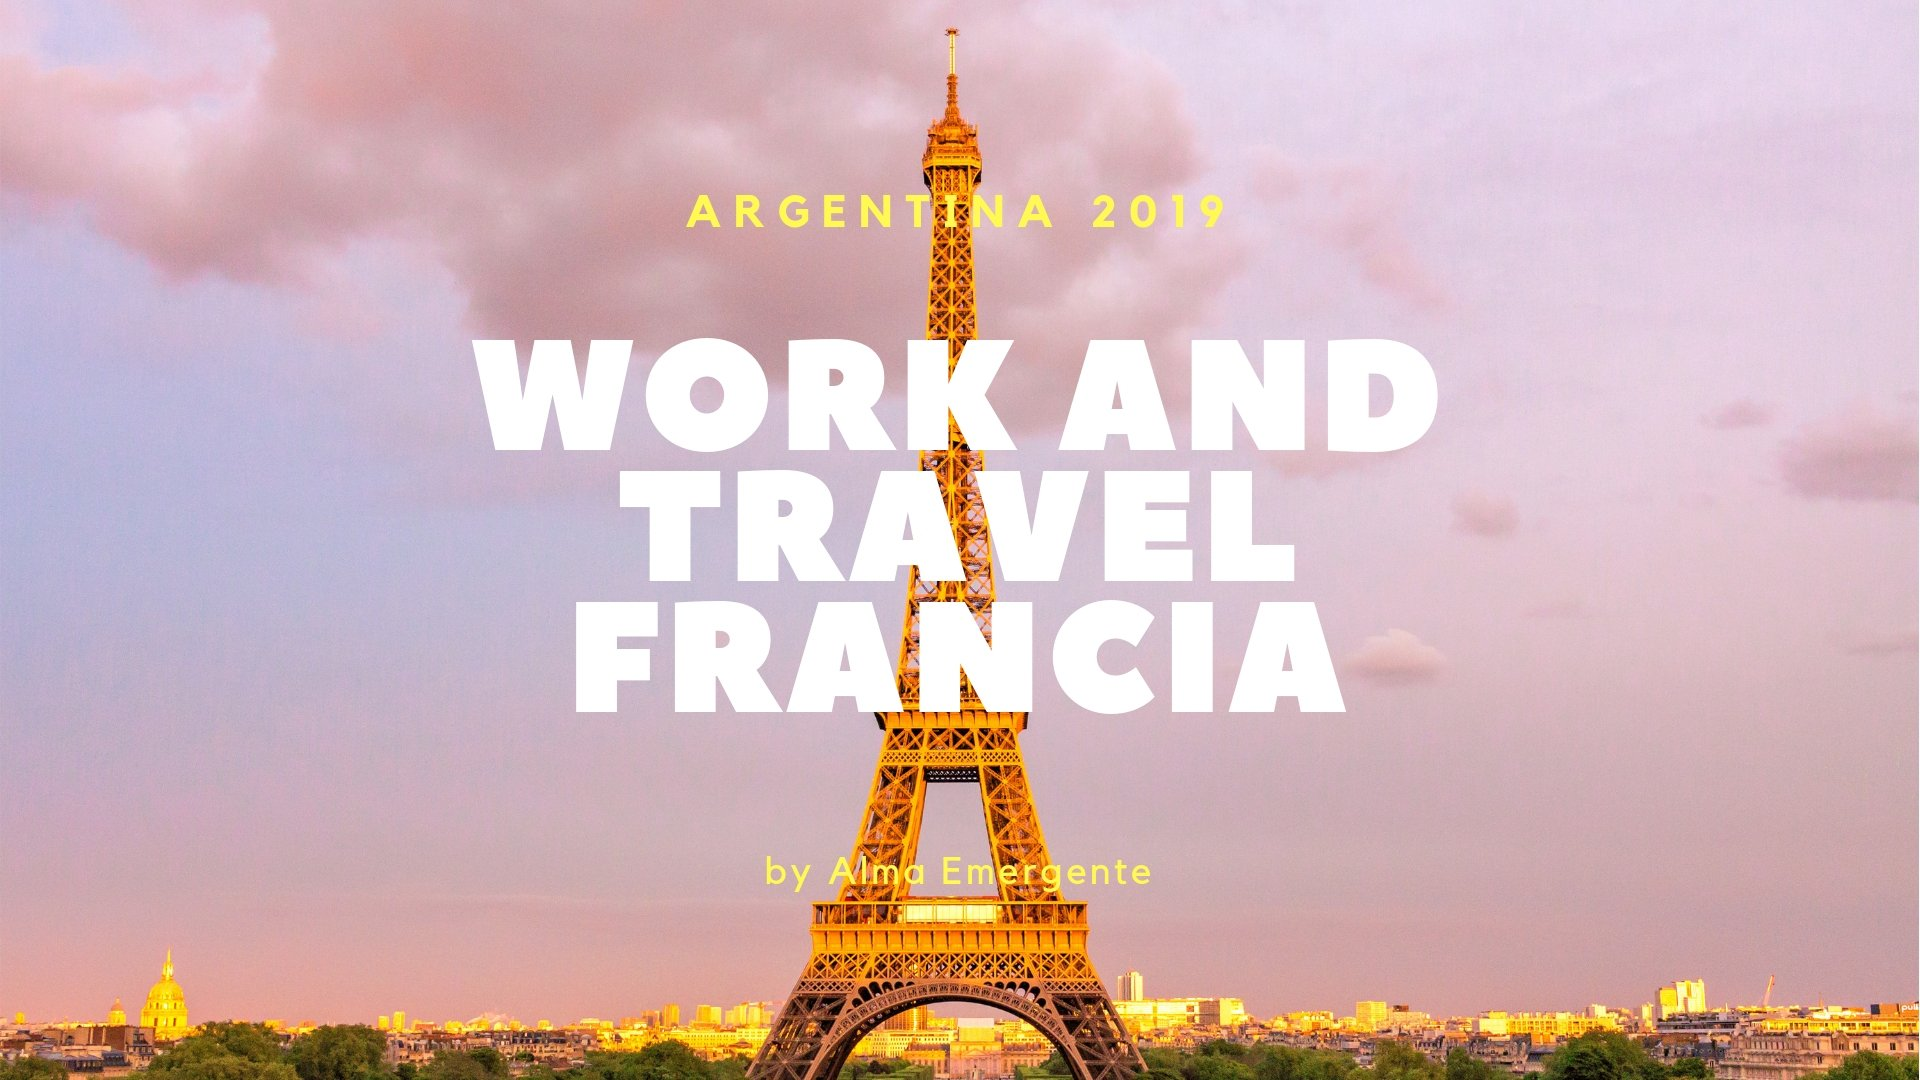 Work and Travel Francia